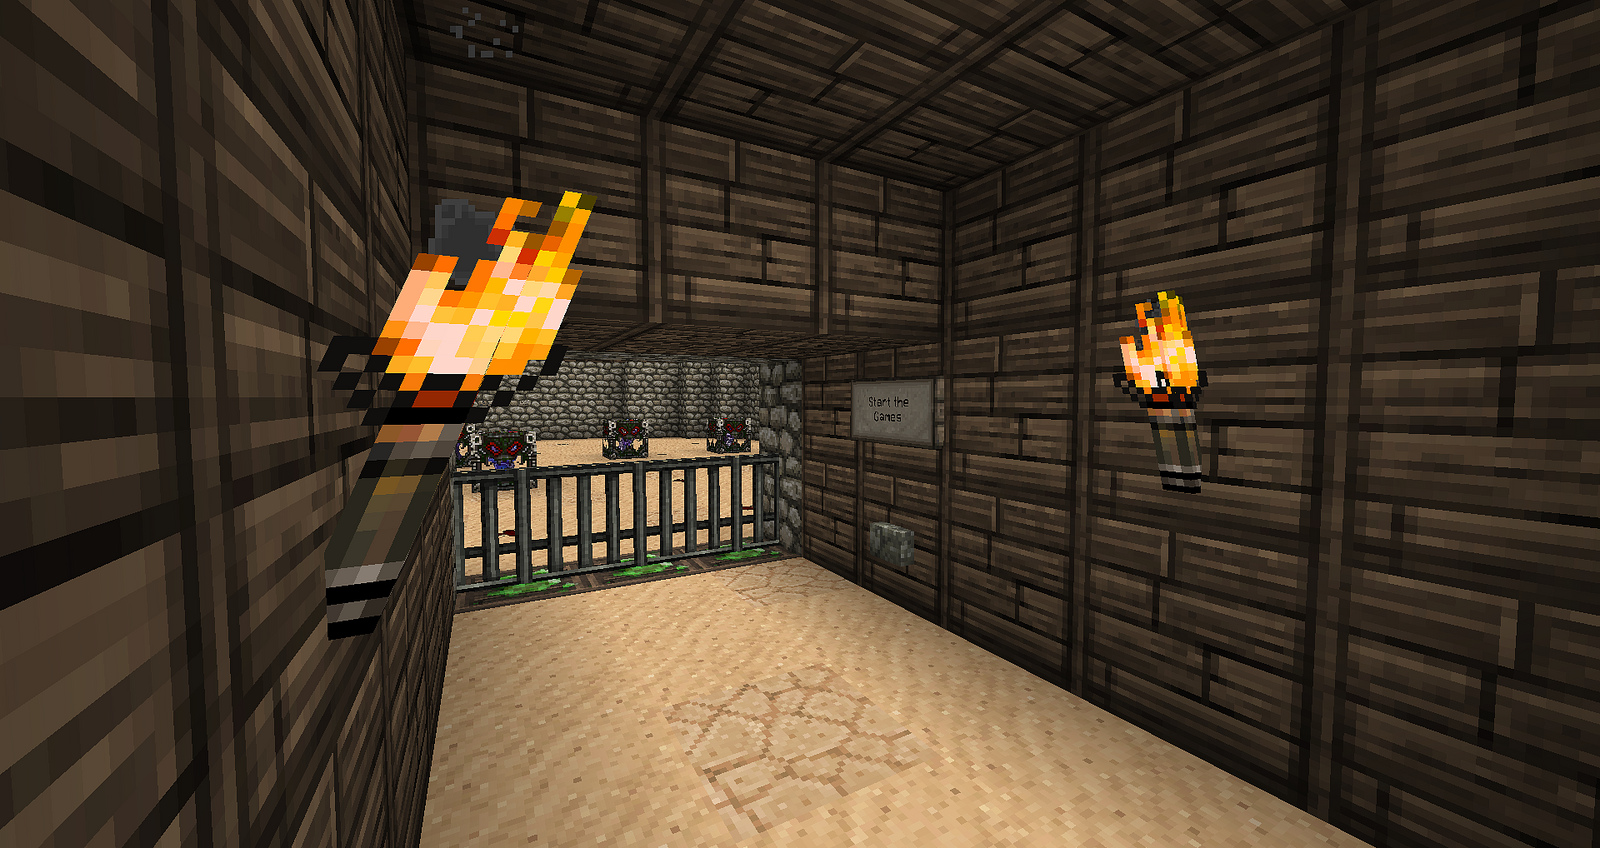 http://minecraft-forum.net/wp-content/uploads/2013/01/29abc__8345984841_daace2e9e2_h.jpg